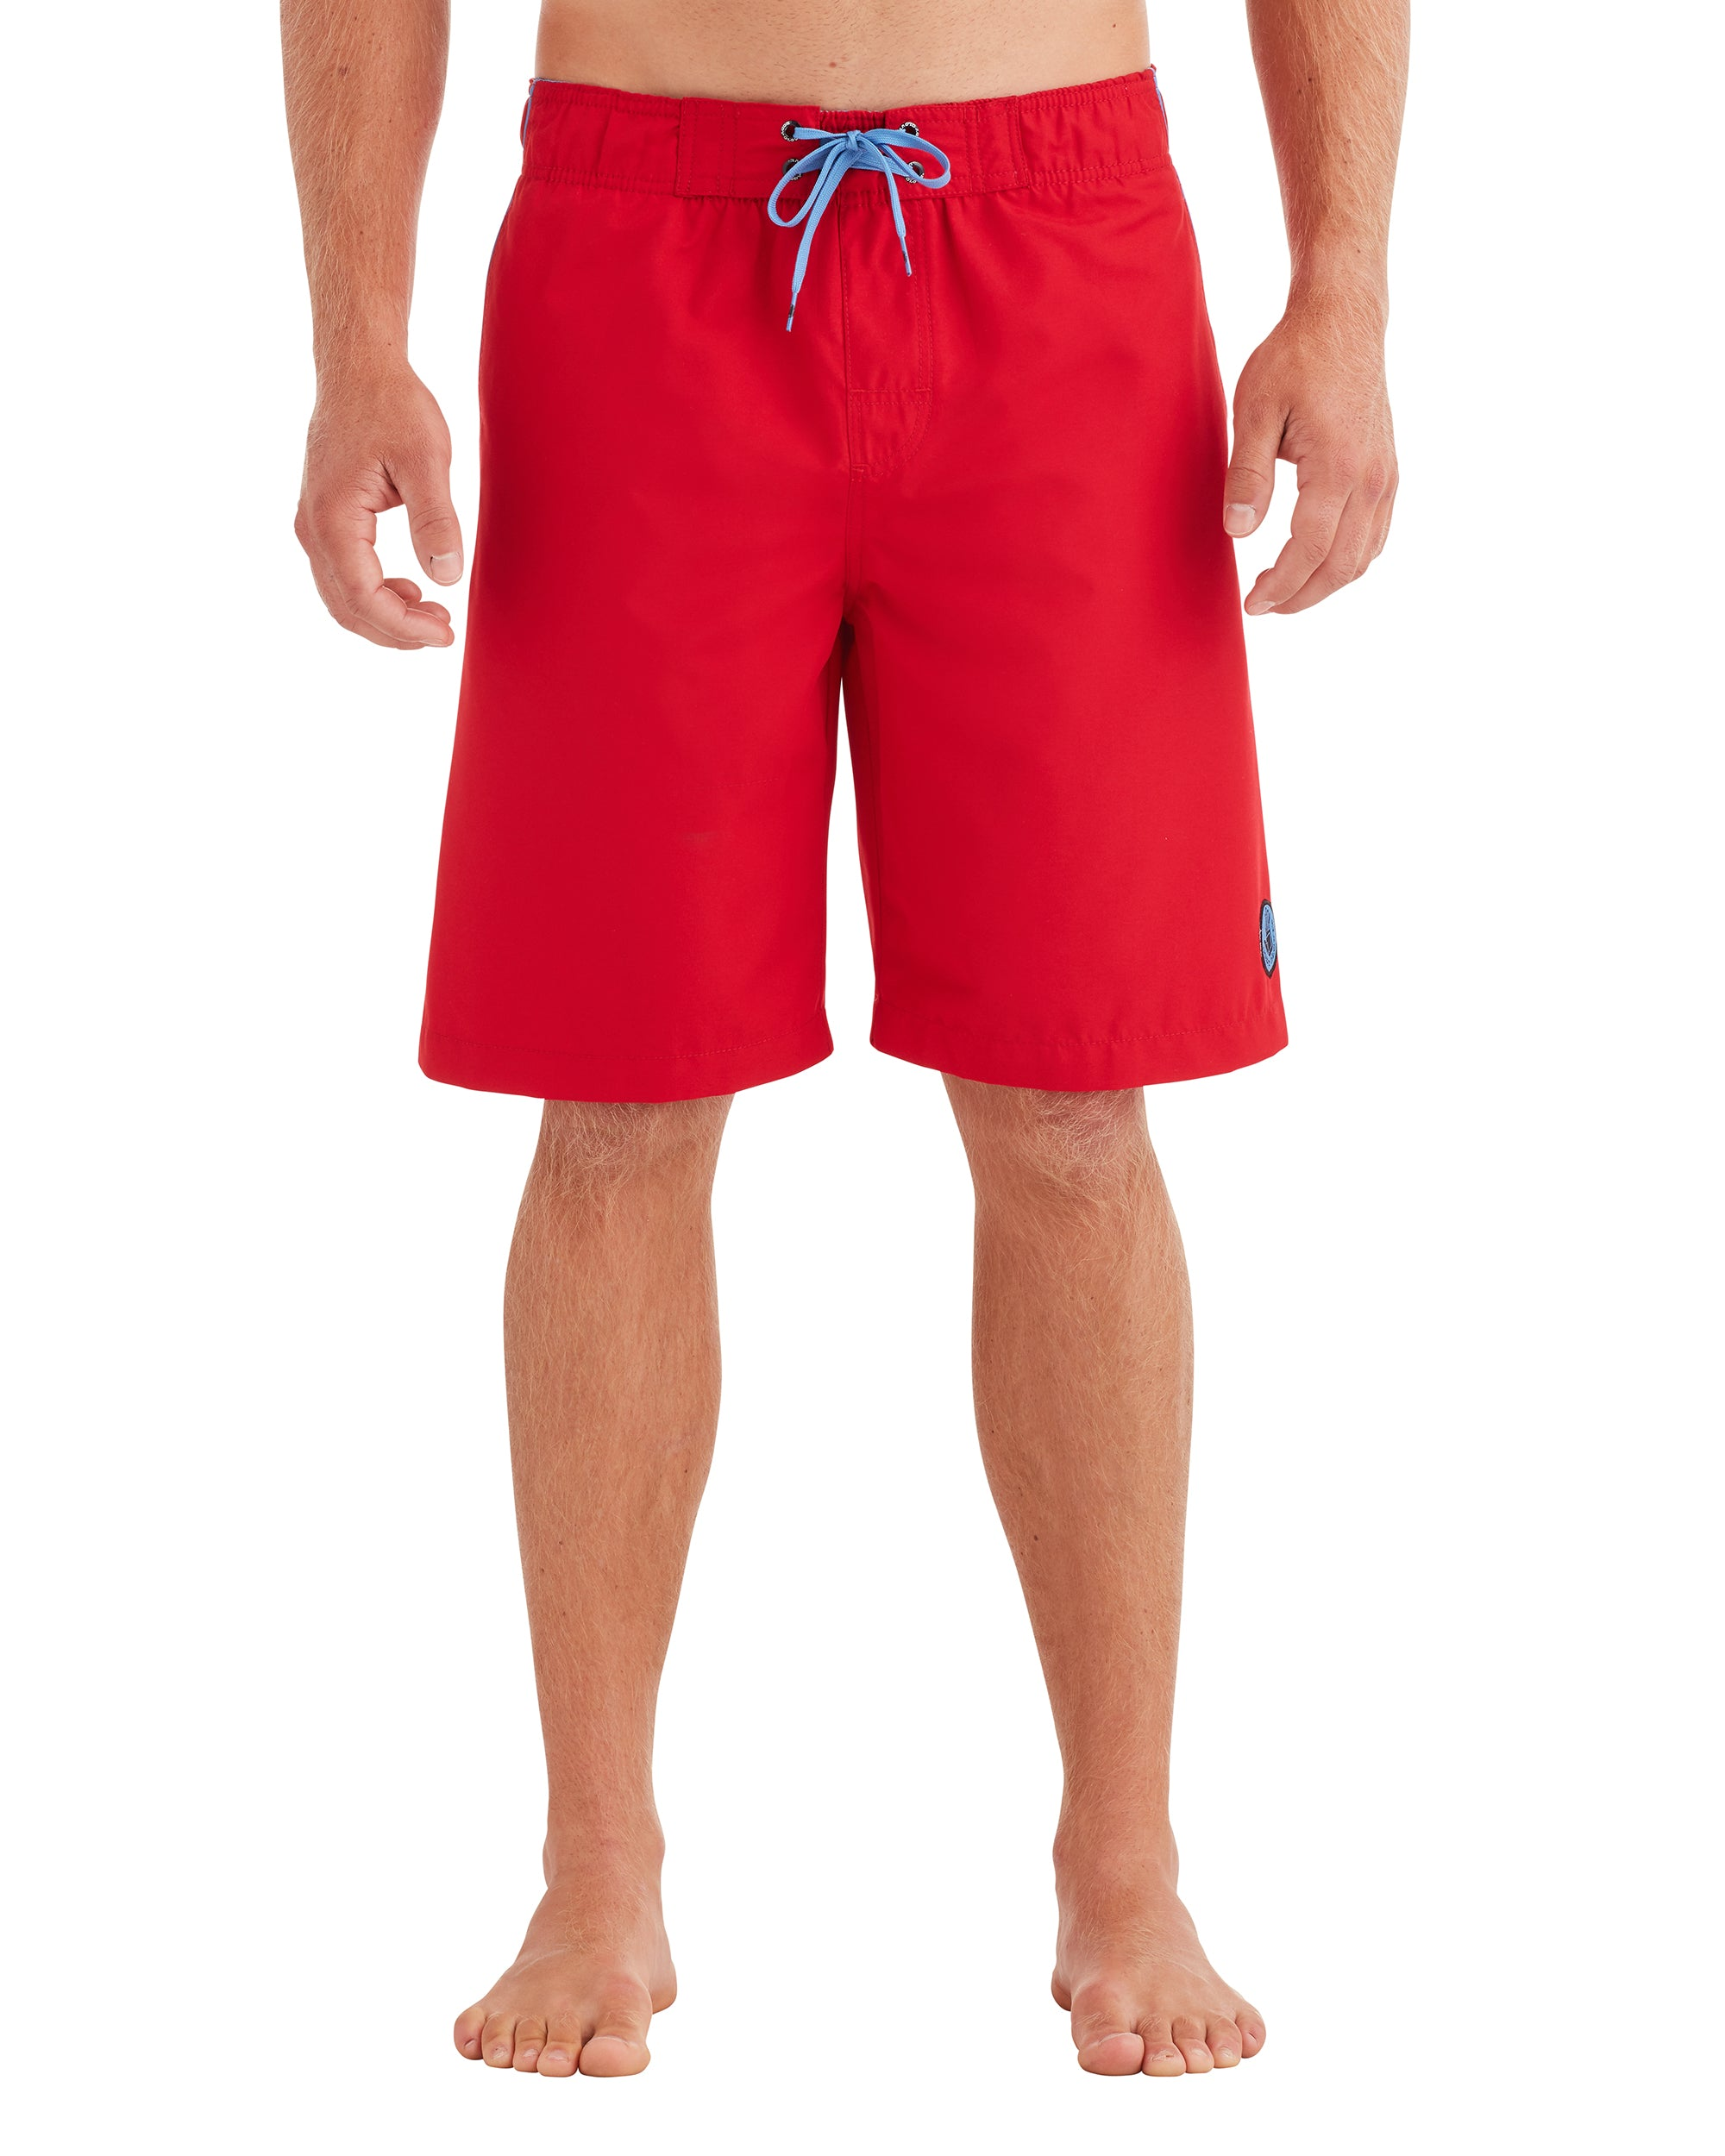 Men's Pipeline Swim Short - Red/Blue